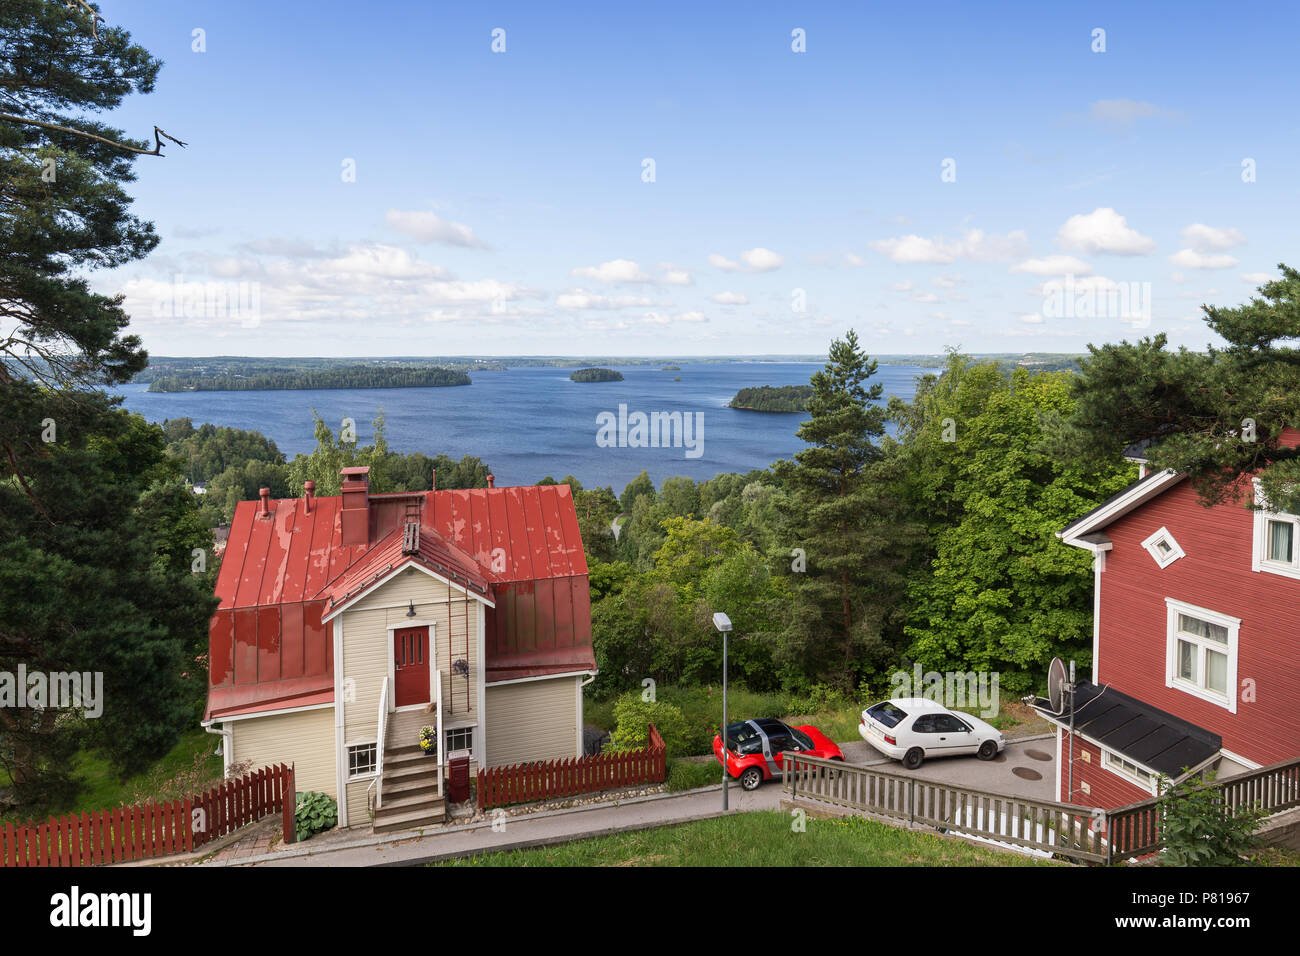 Scenic view of two old wooden houses at the Pispala district and Lake Pyhäjärvi from above in Tampere, Finland, on a sunny day in summer. Copy space. - Stock Image